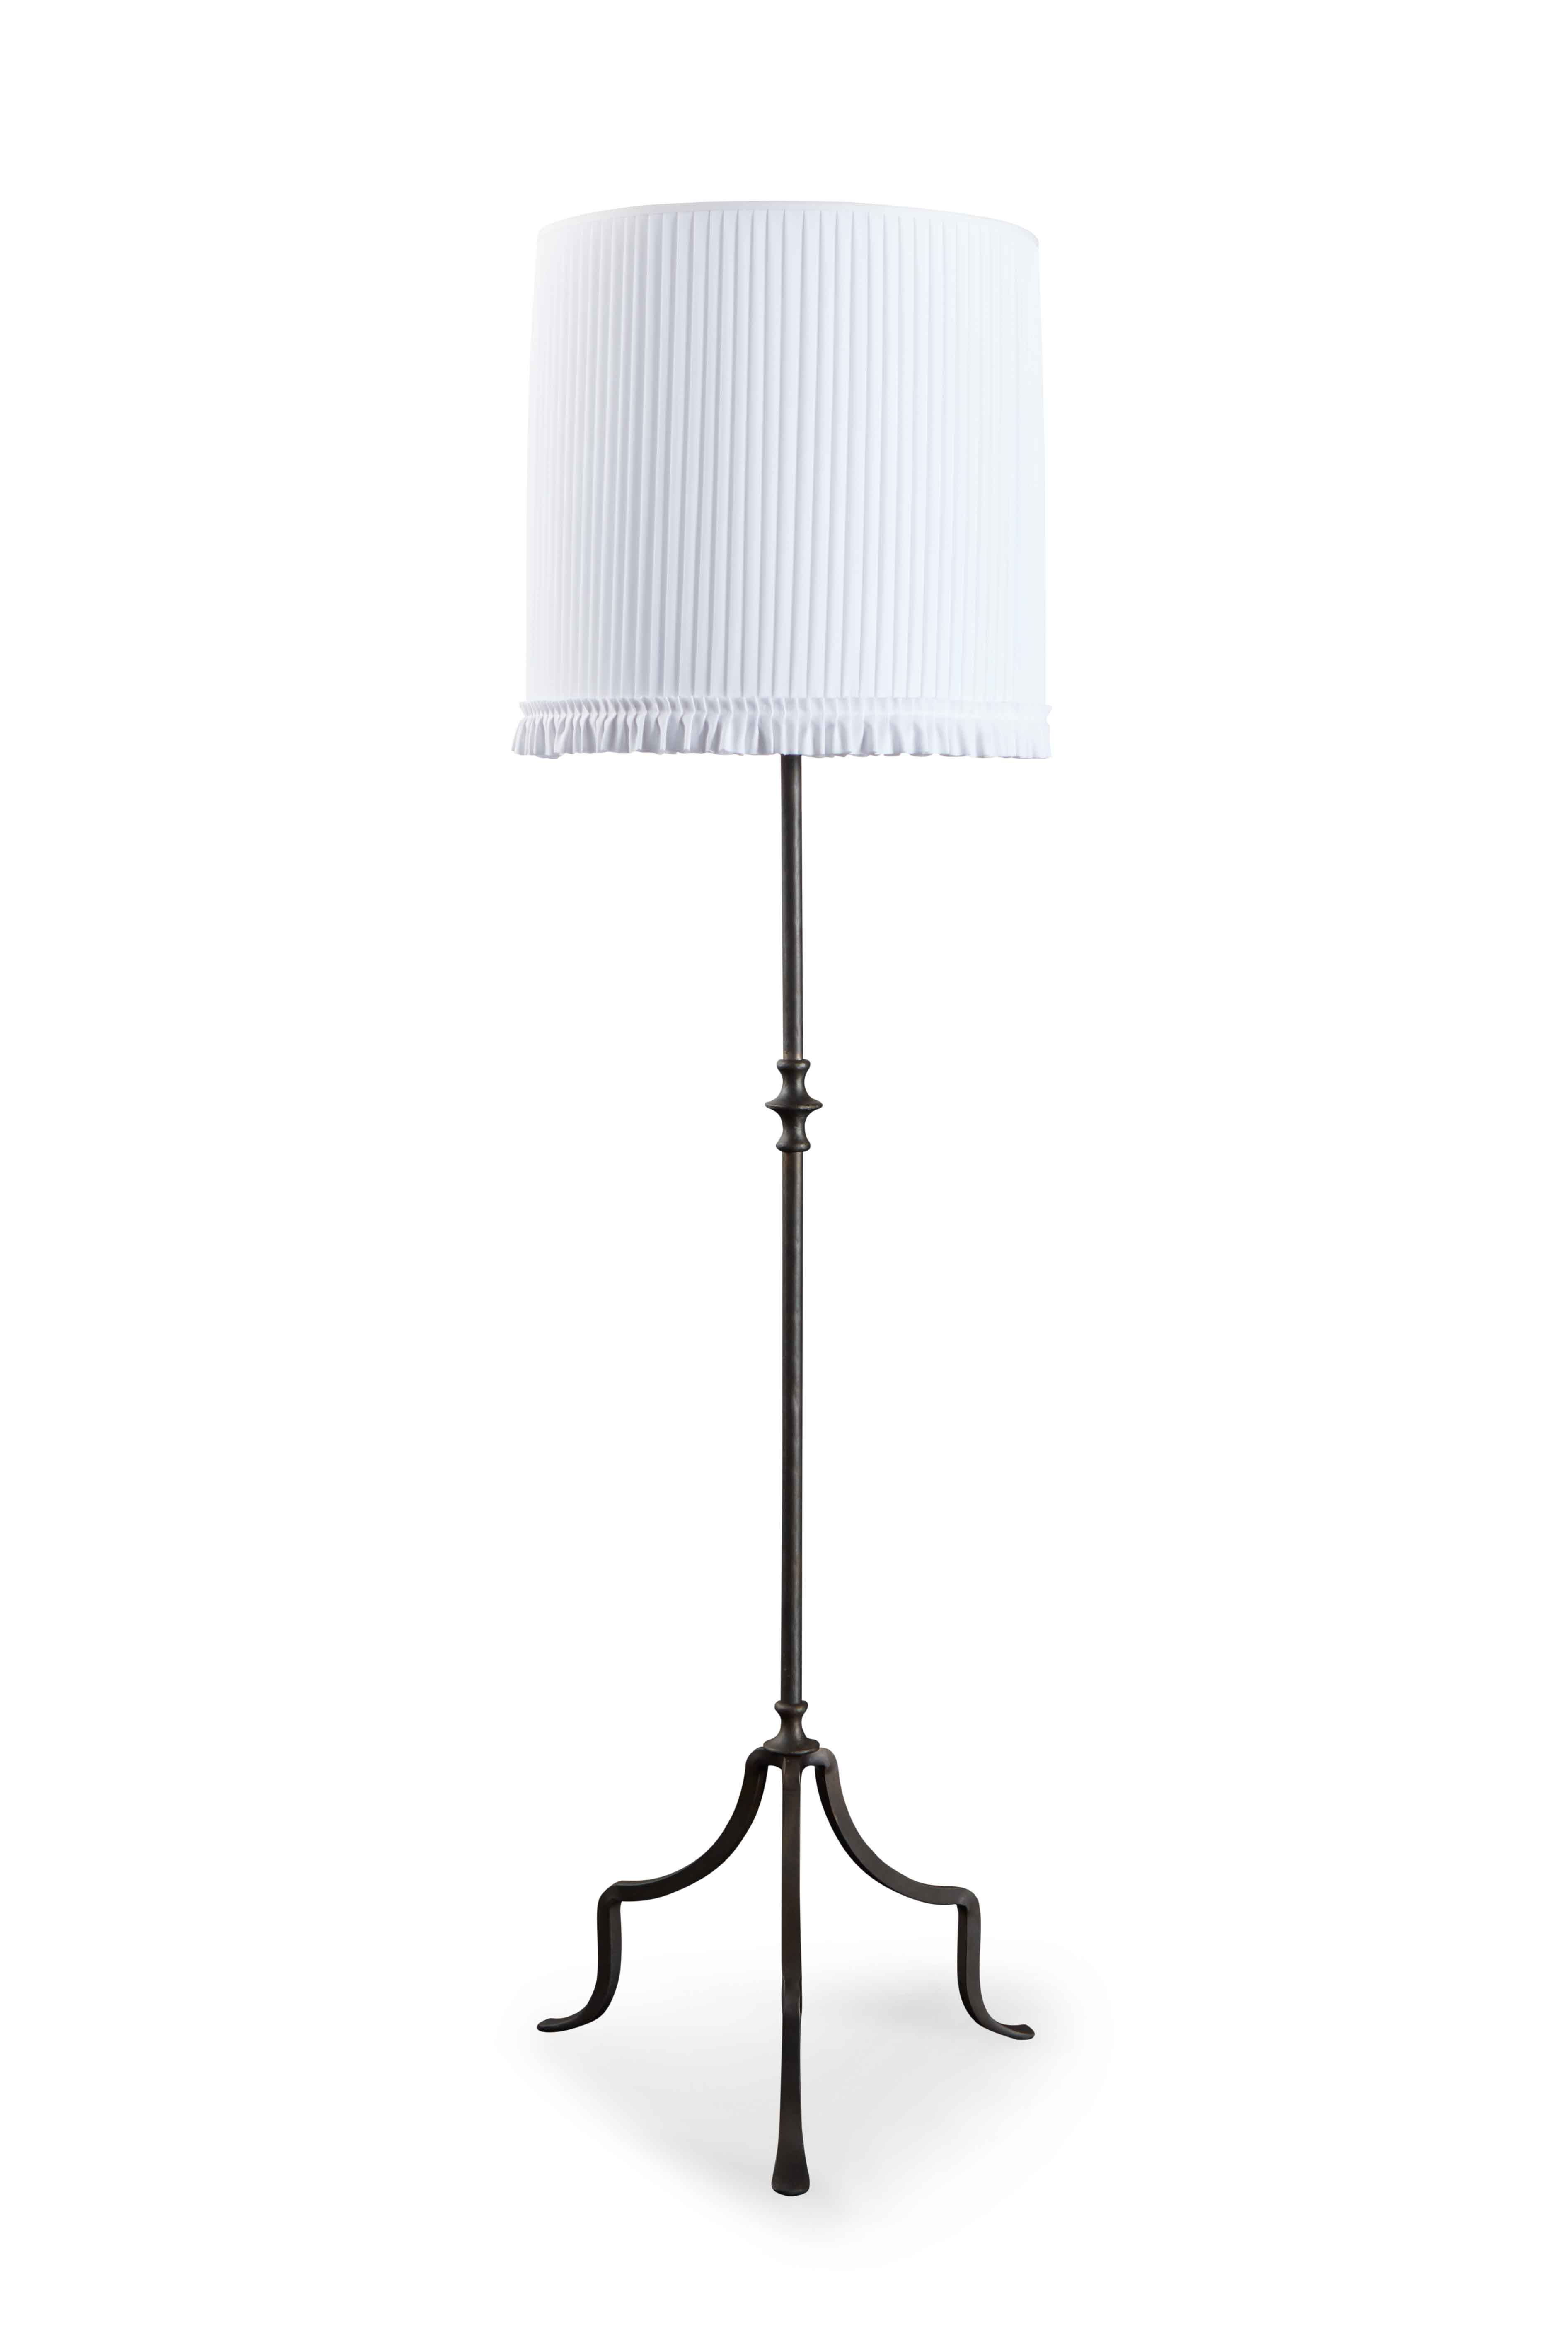 Baker Furniture floor lamp